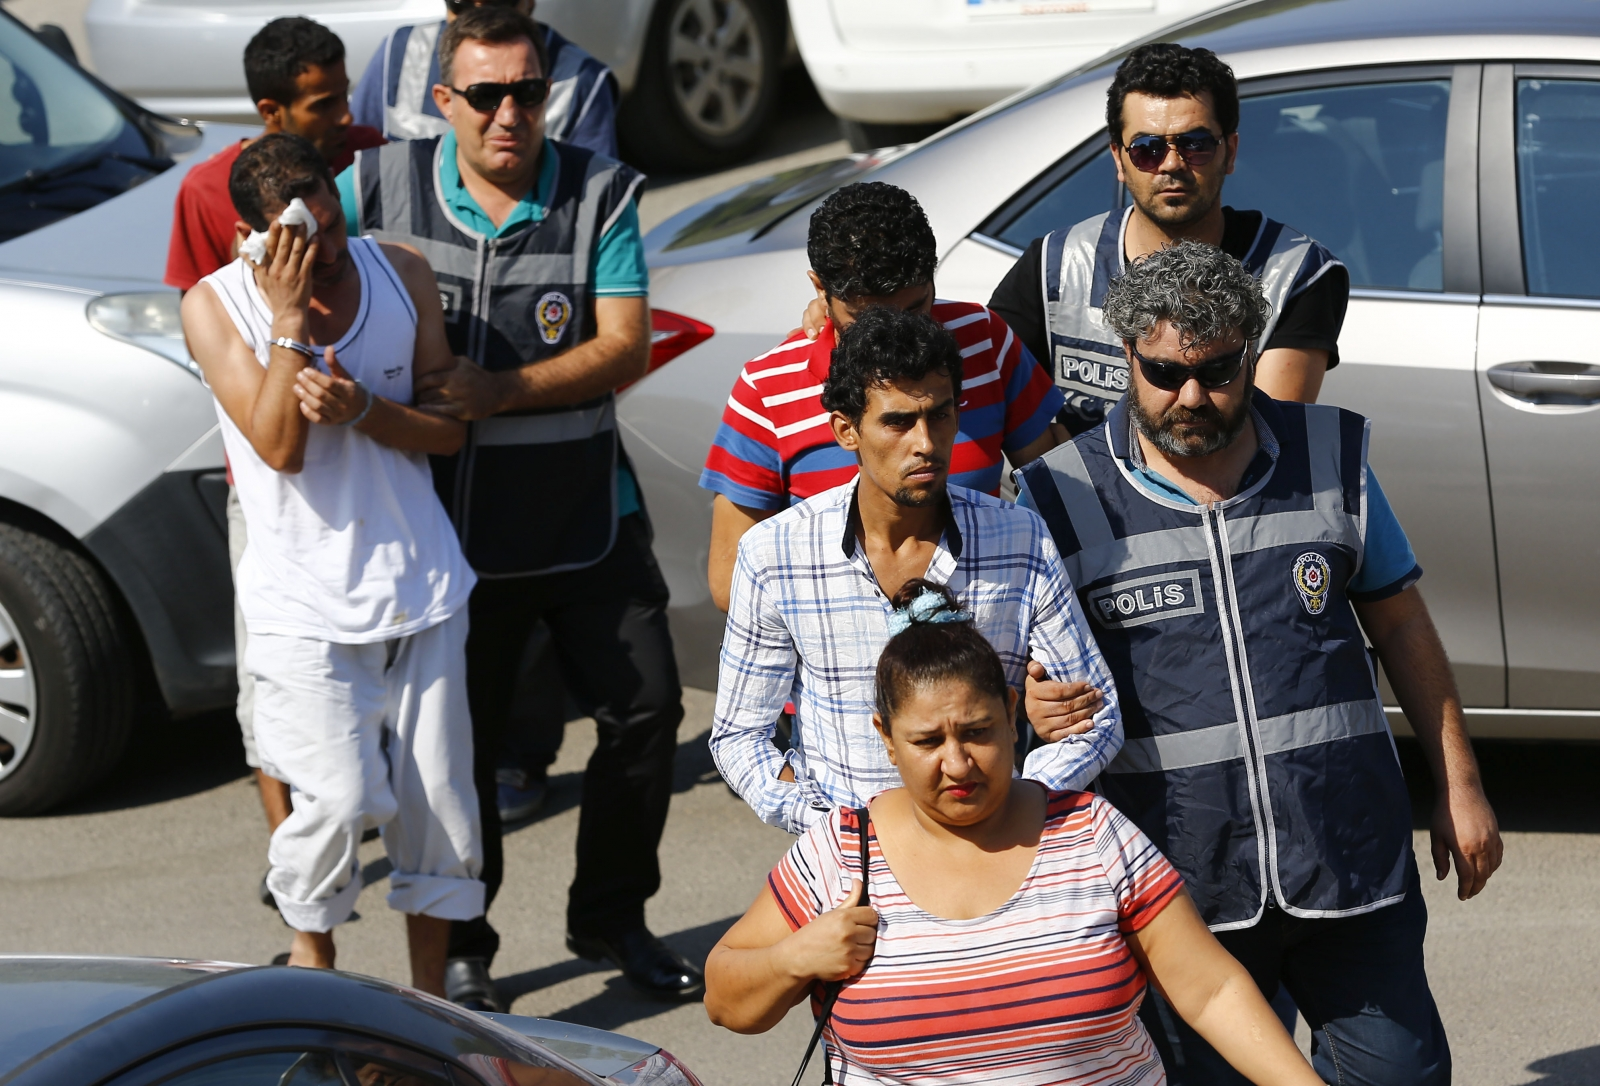 Syrians walked to court